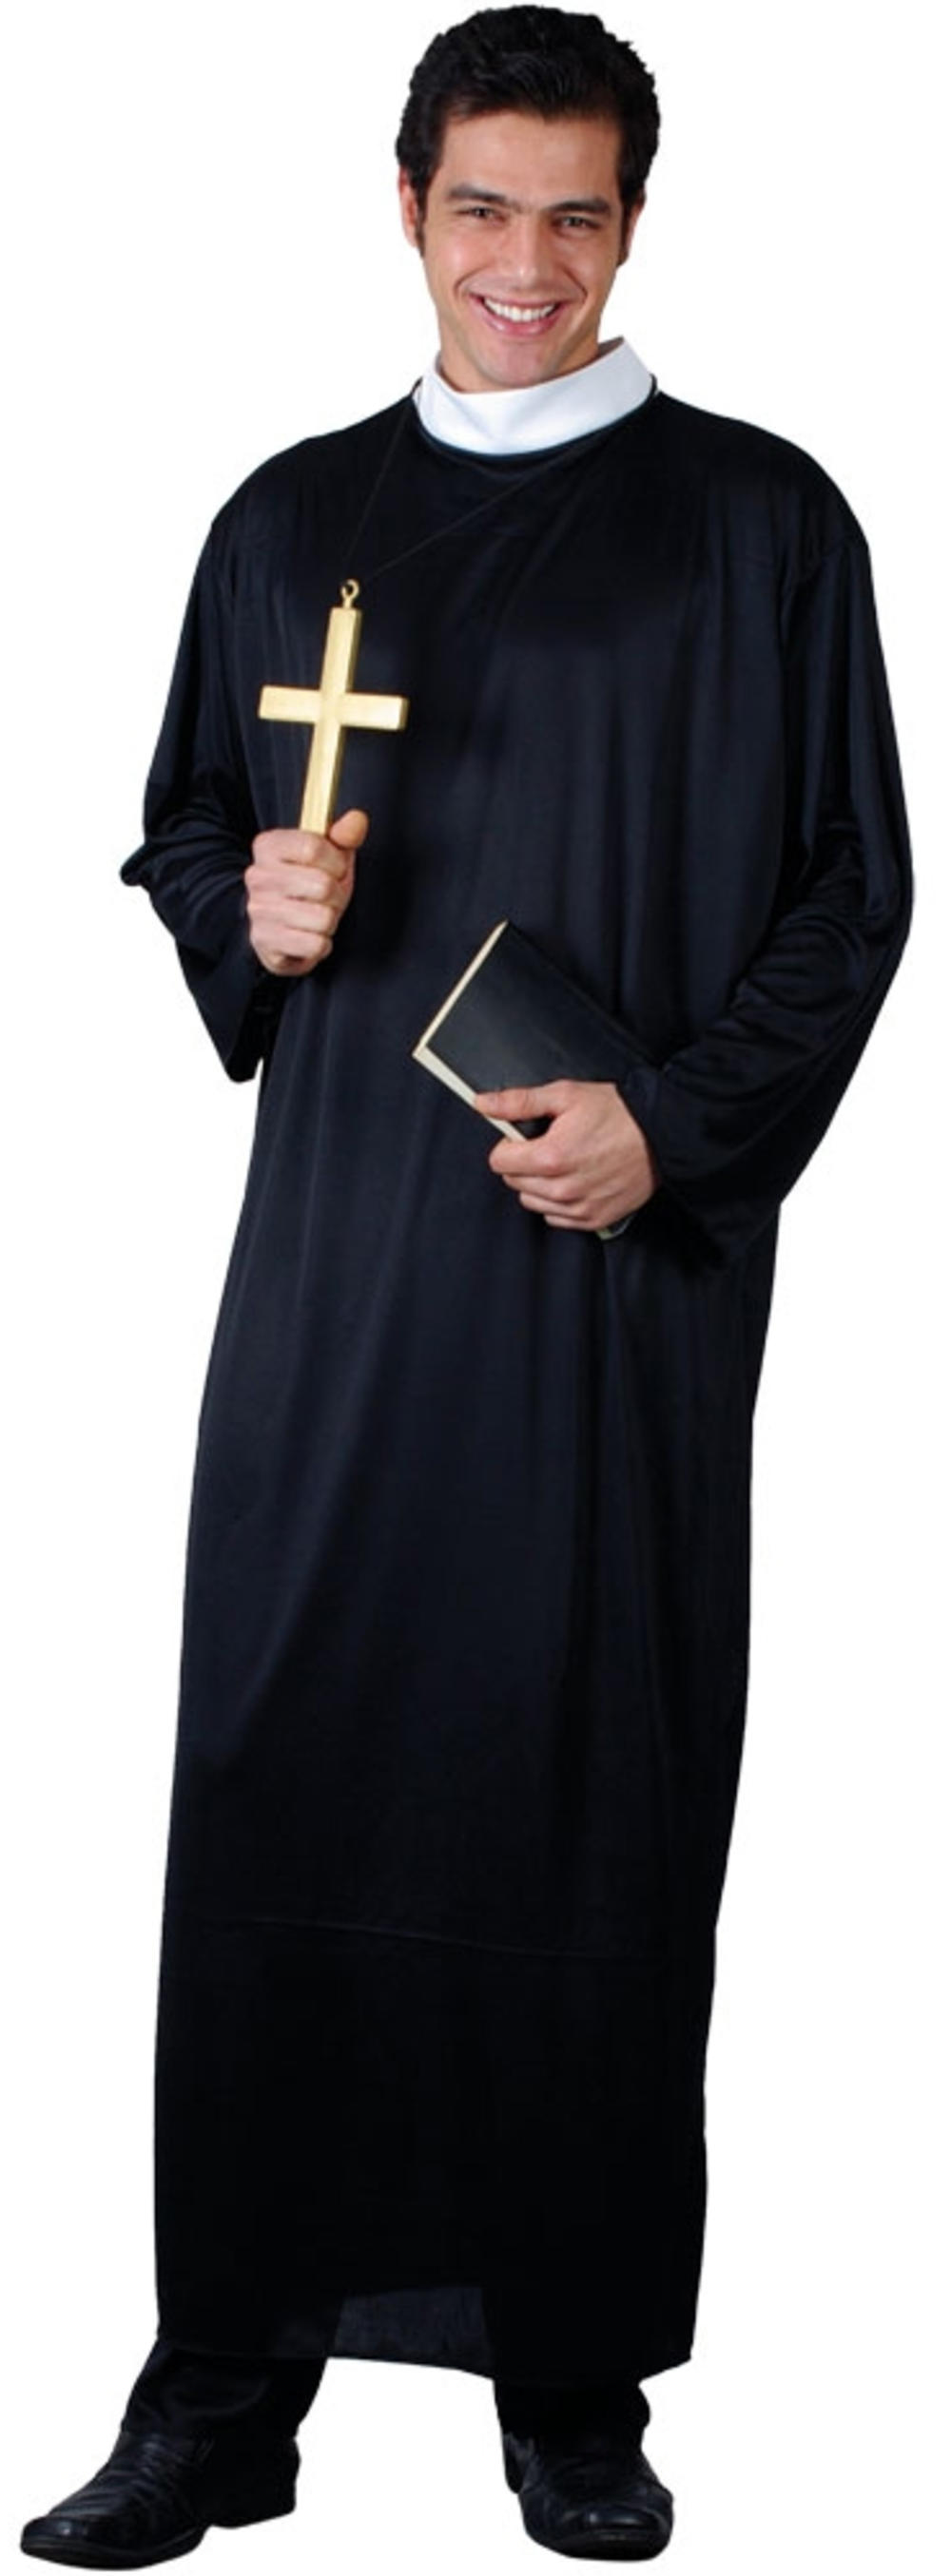 Father Priest Mens Fancy Dress Minster Vicar Adults Religious Costume Outfit